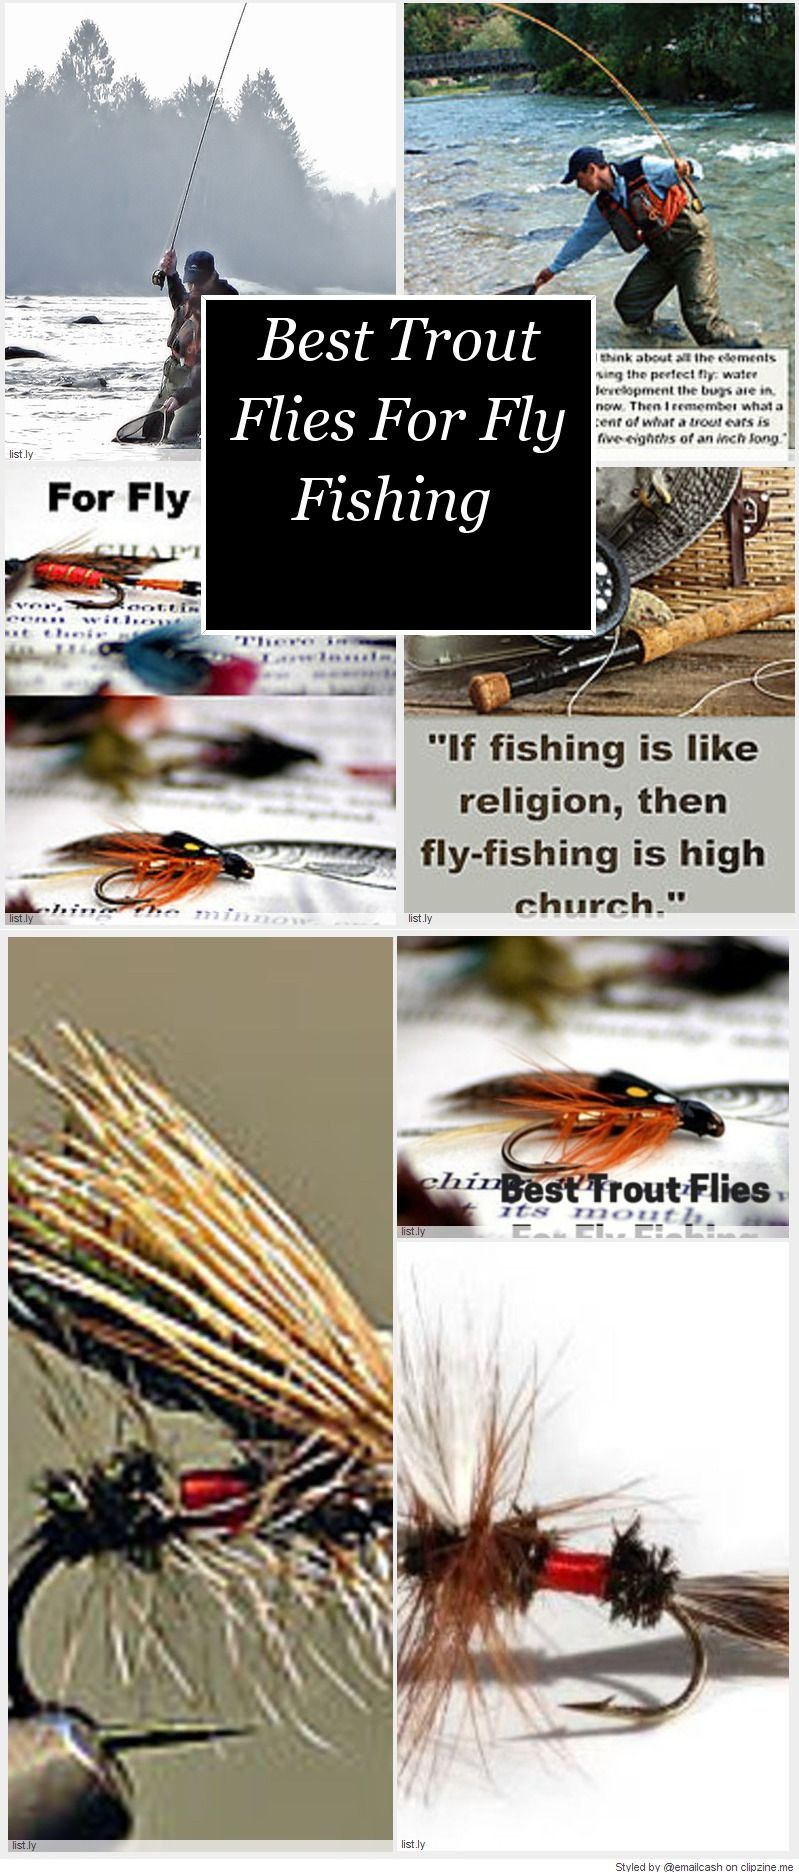 Best Trout Flies For Fly Fishing | Pesca con moscas y Pesca